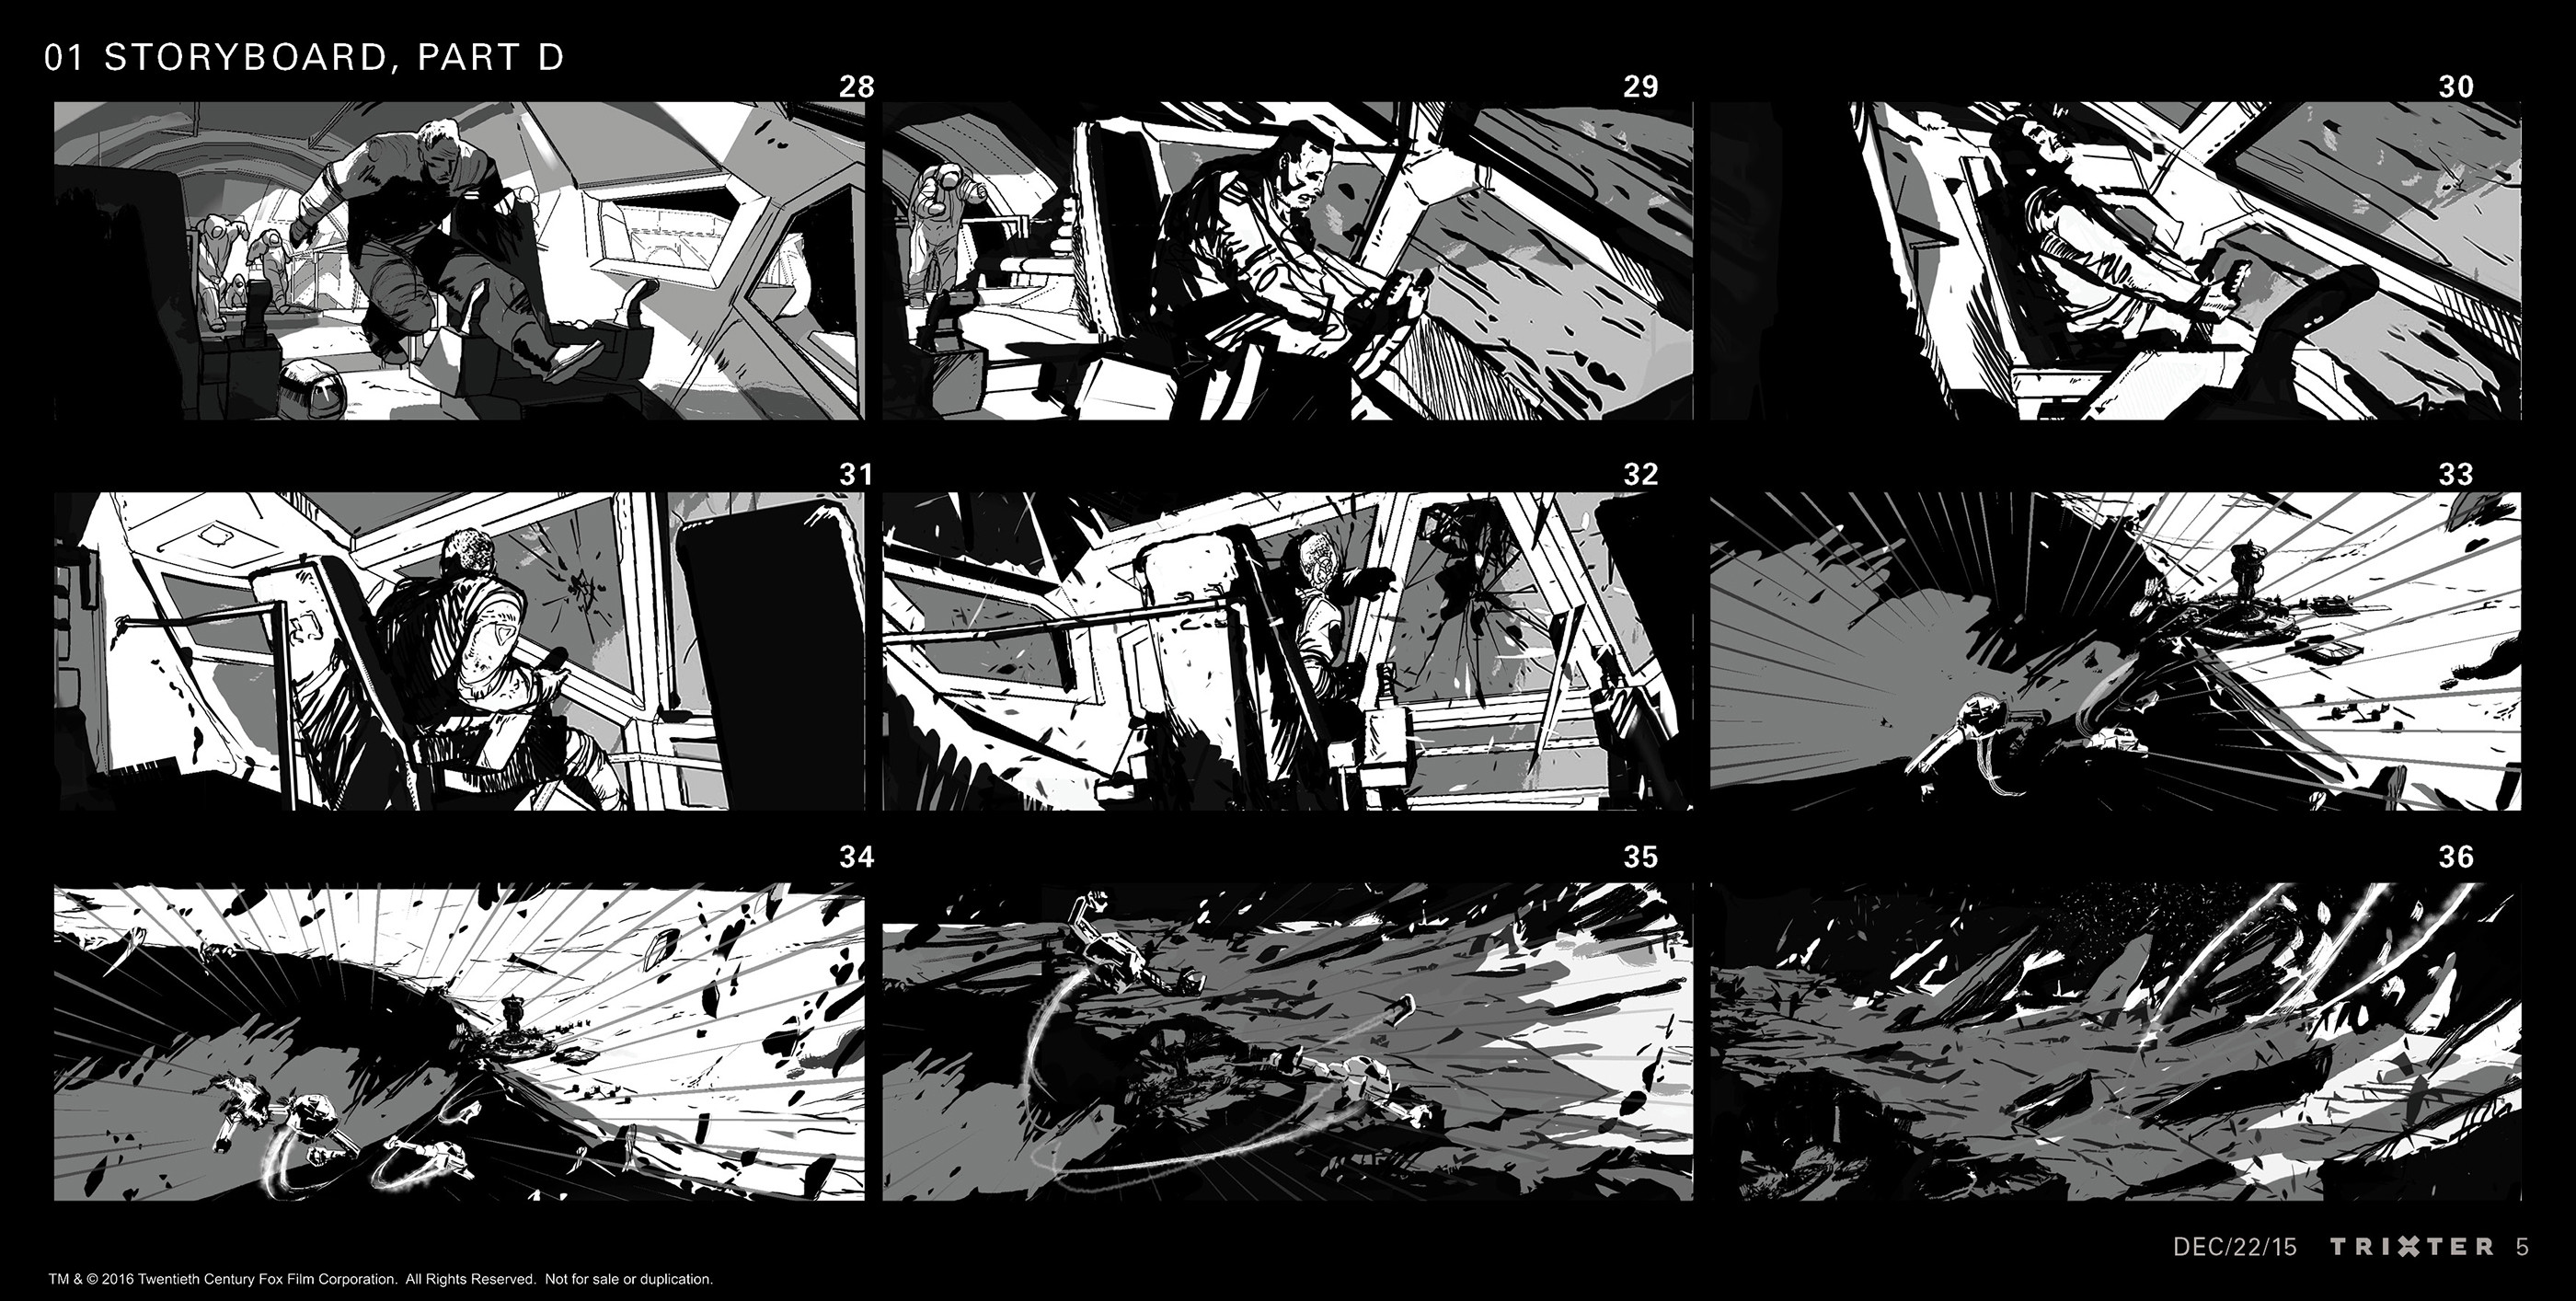 Sequence storyboard: Part 4 of 5